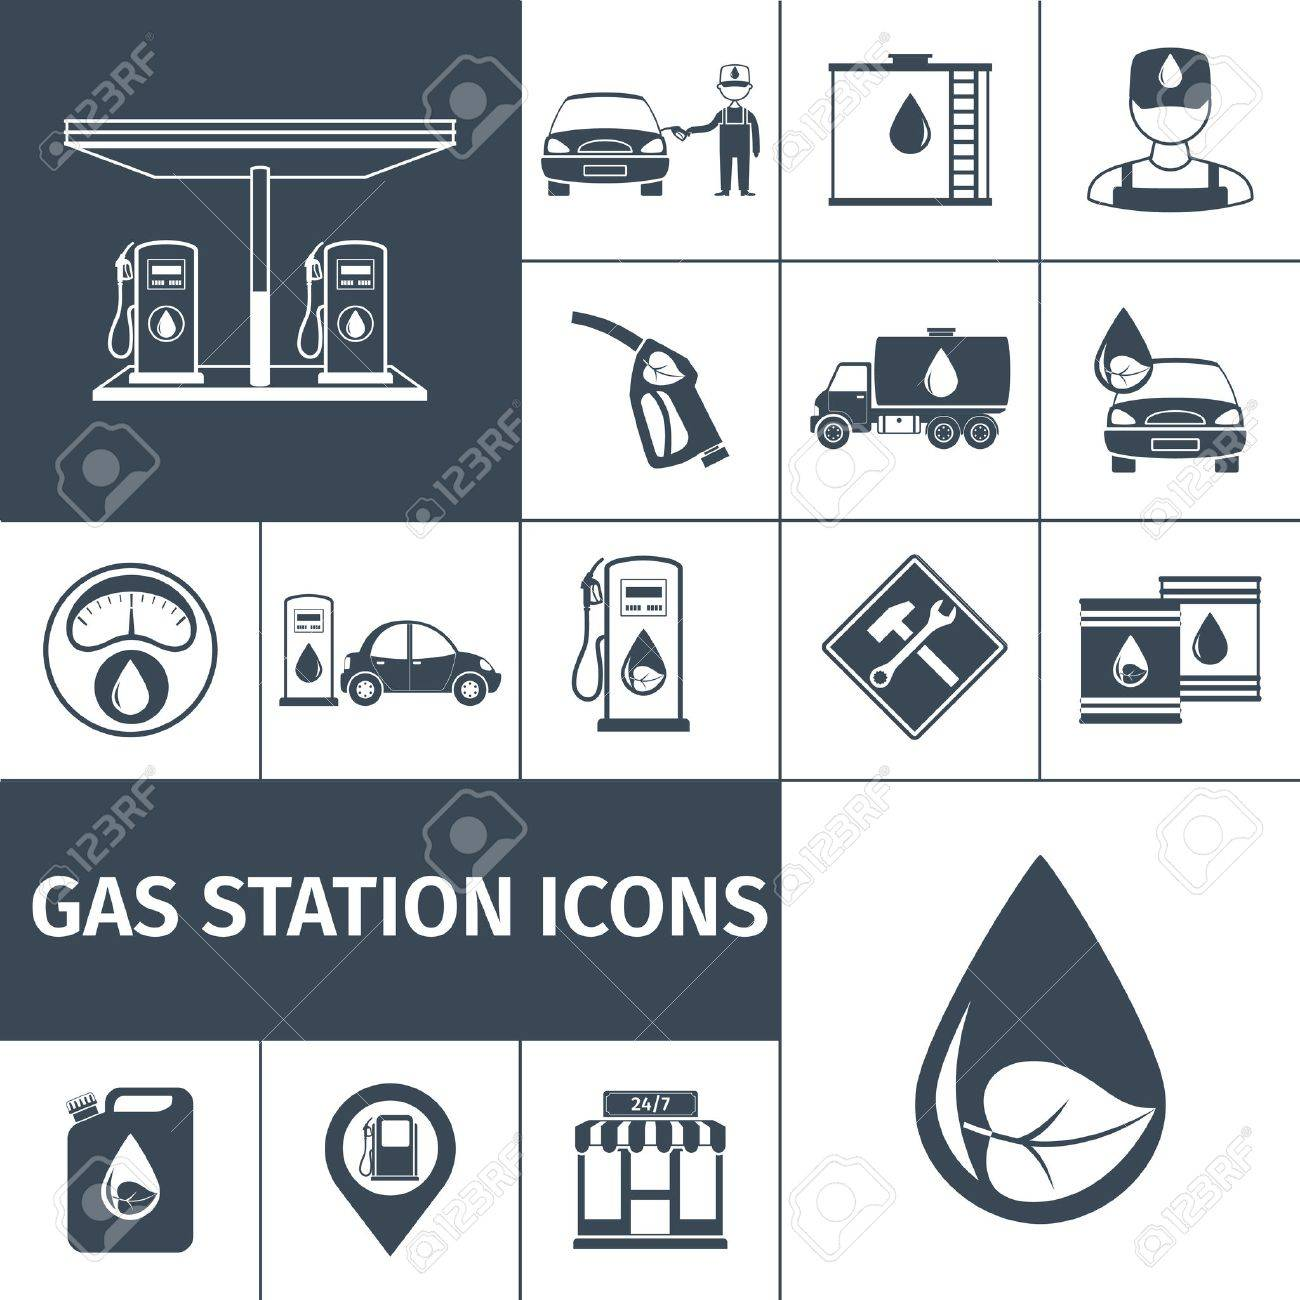 Gas Station Icons Black Set With Petrol Station Fuel Tank Isolated